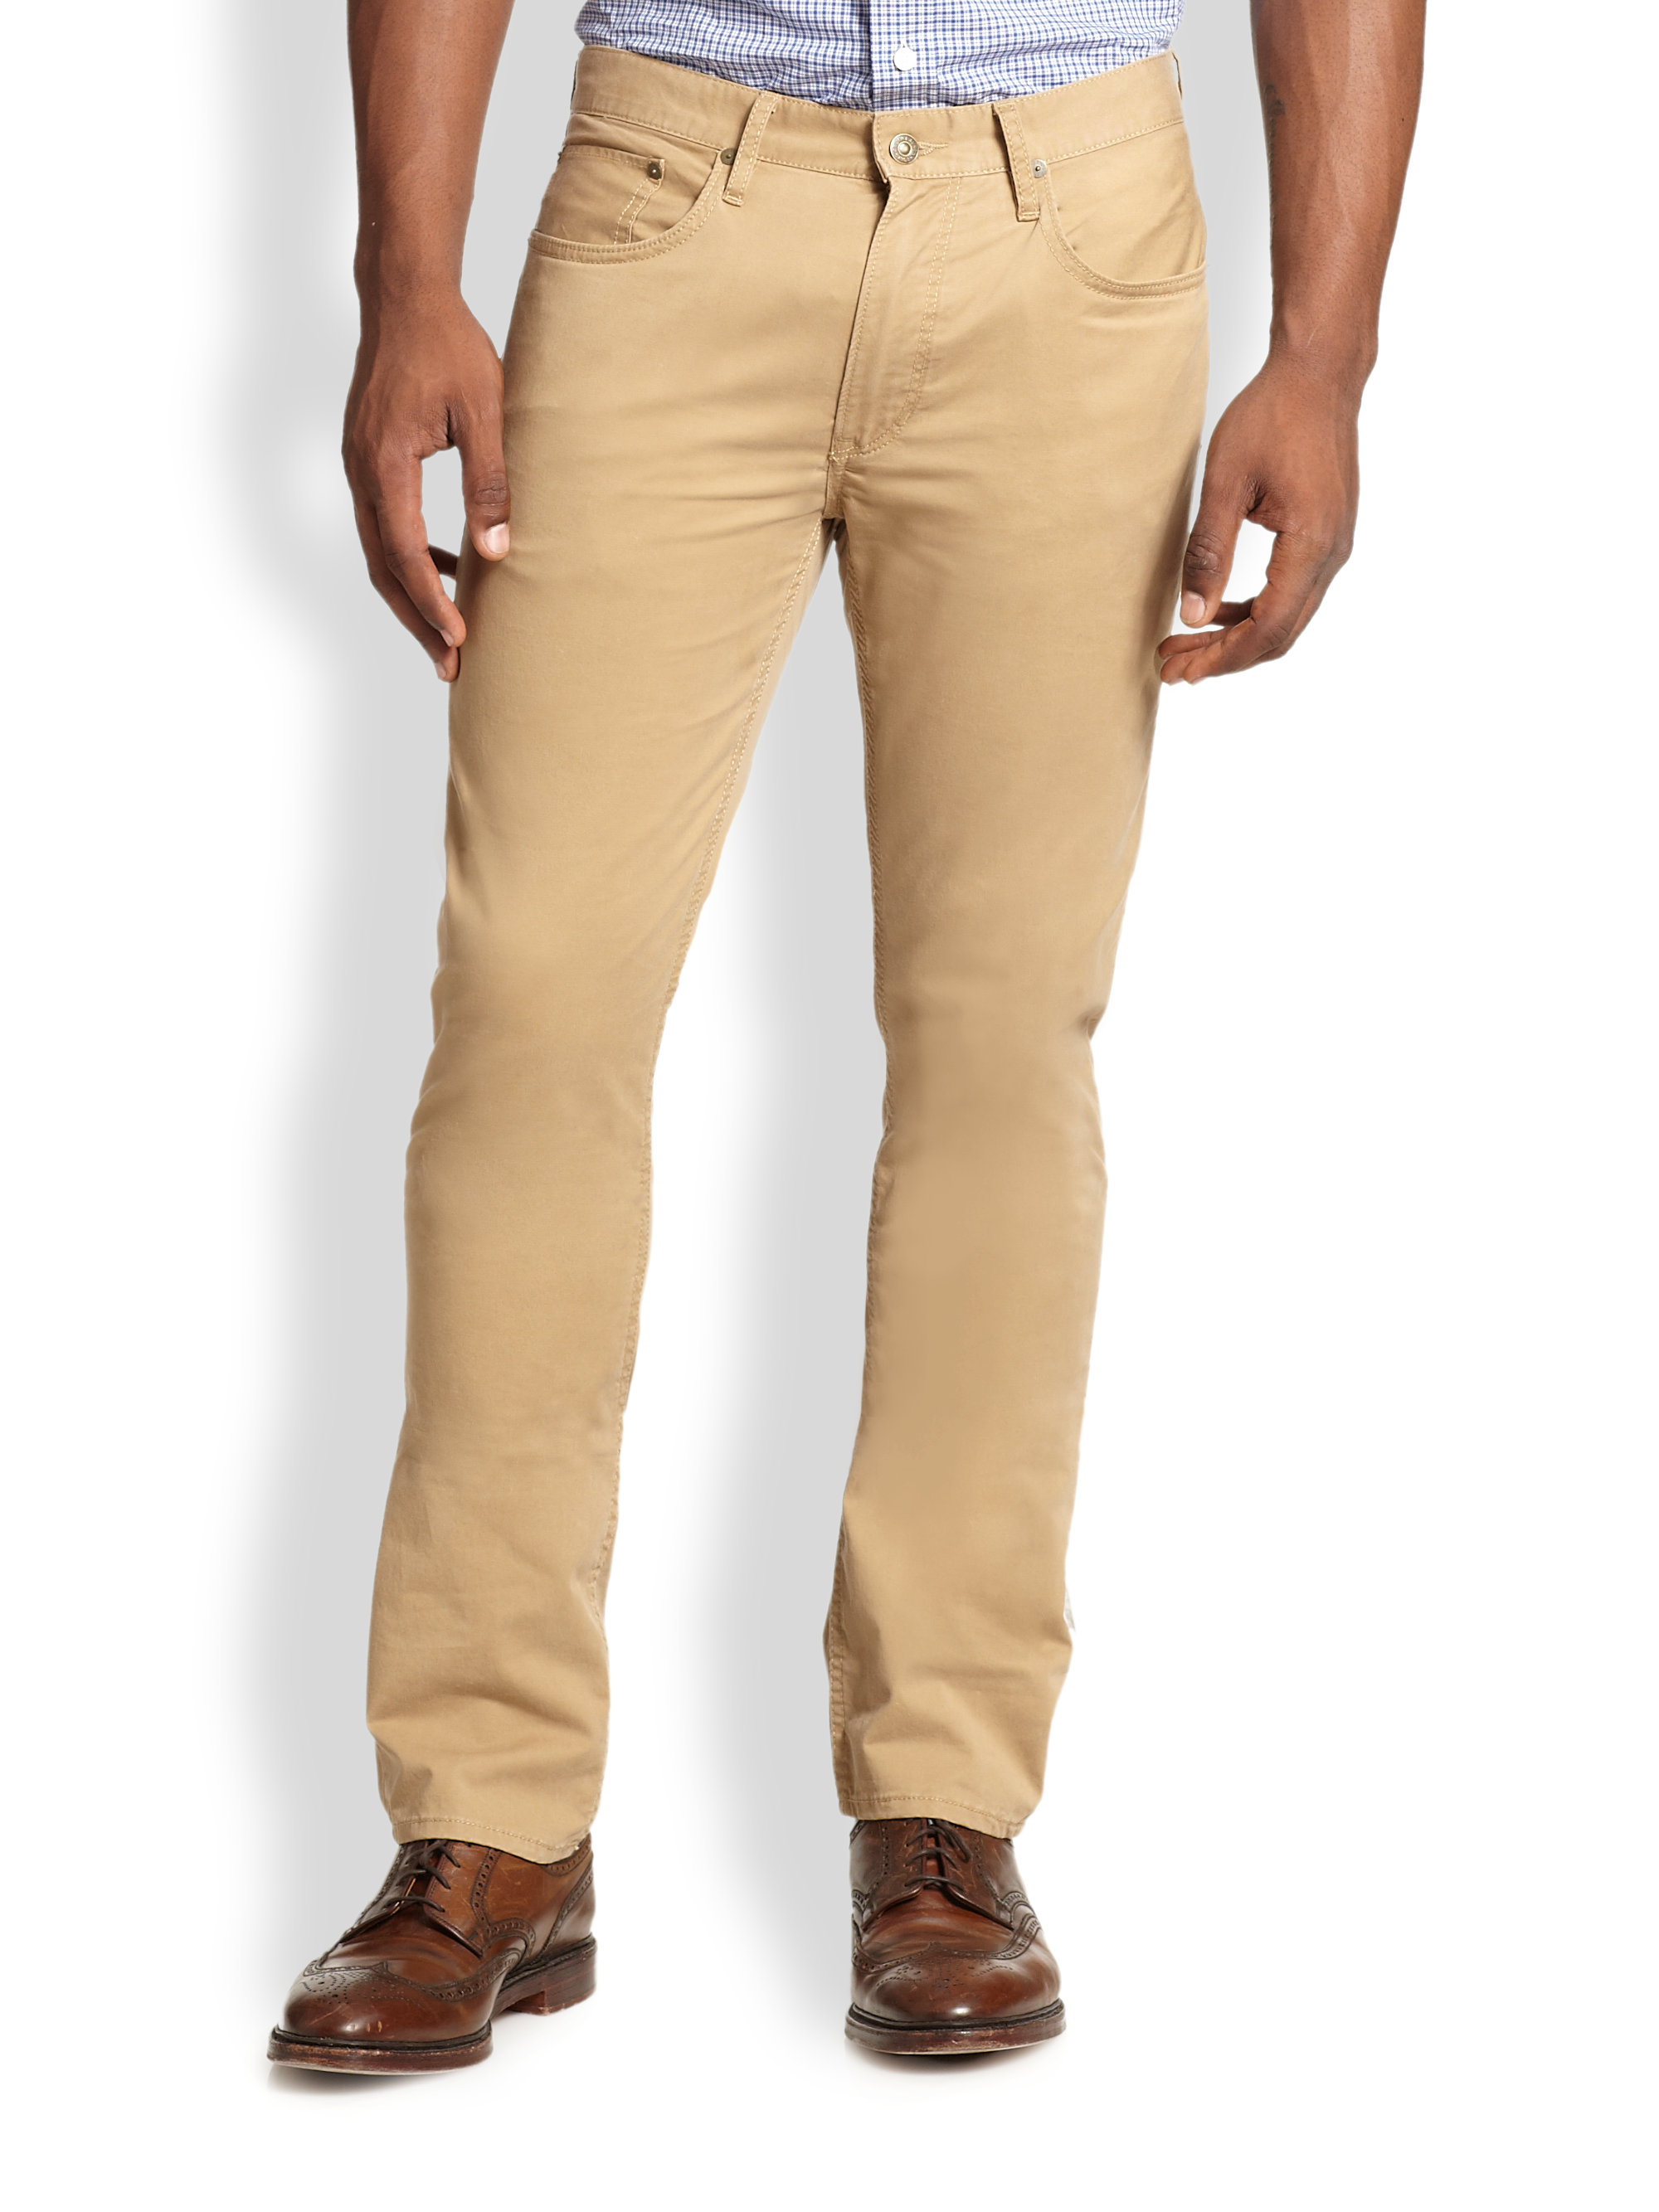 Natural And Freely Slim Fit Stretch Chinos in Beige - Classic khaki Polo Ralph Lauren Best Wholesale For Sale 1HrAyG